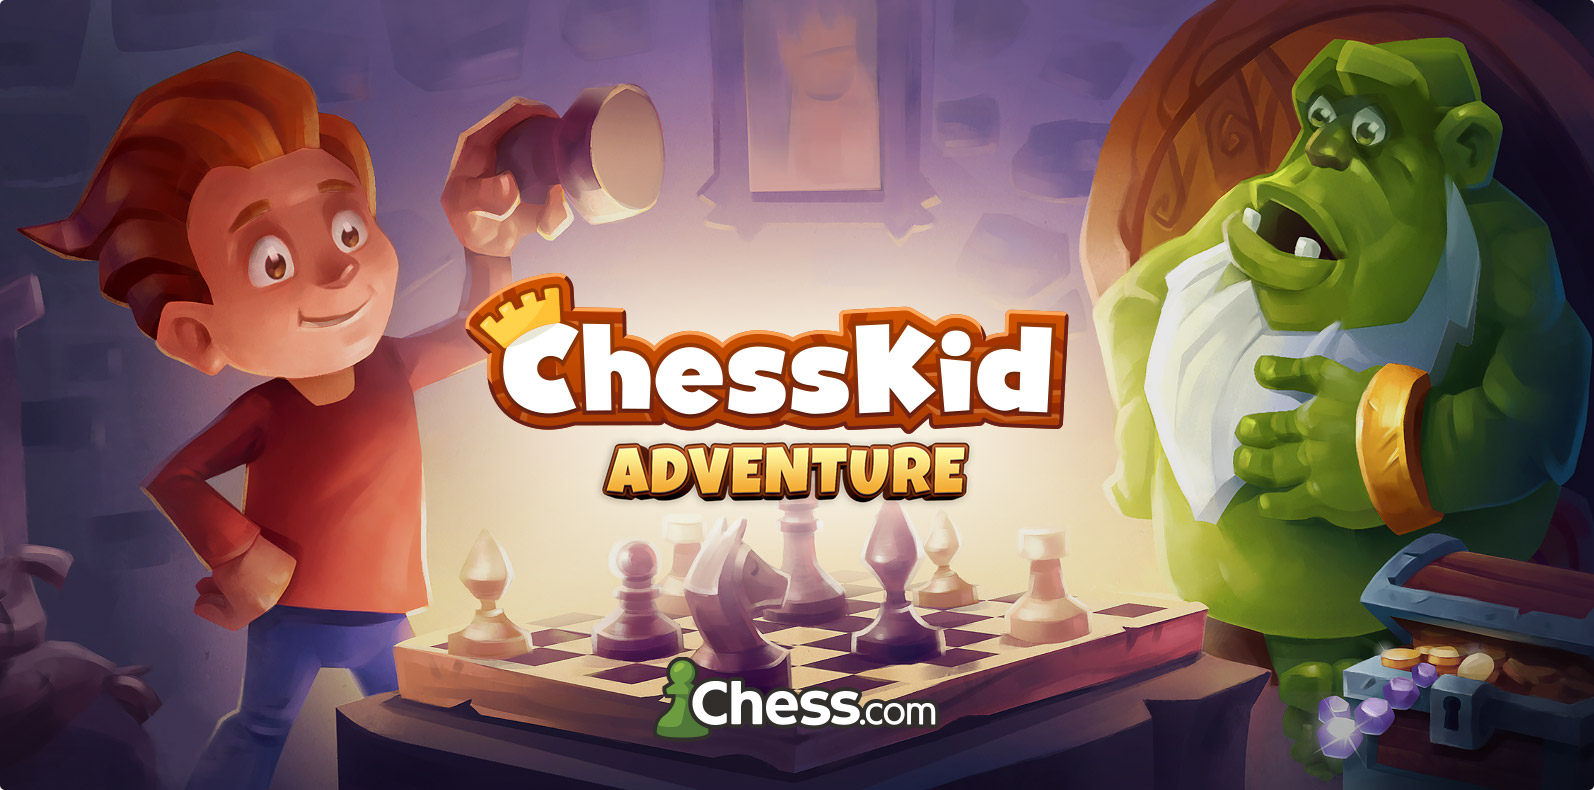 ChessKid Adventure game for Chess.com